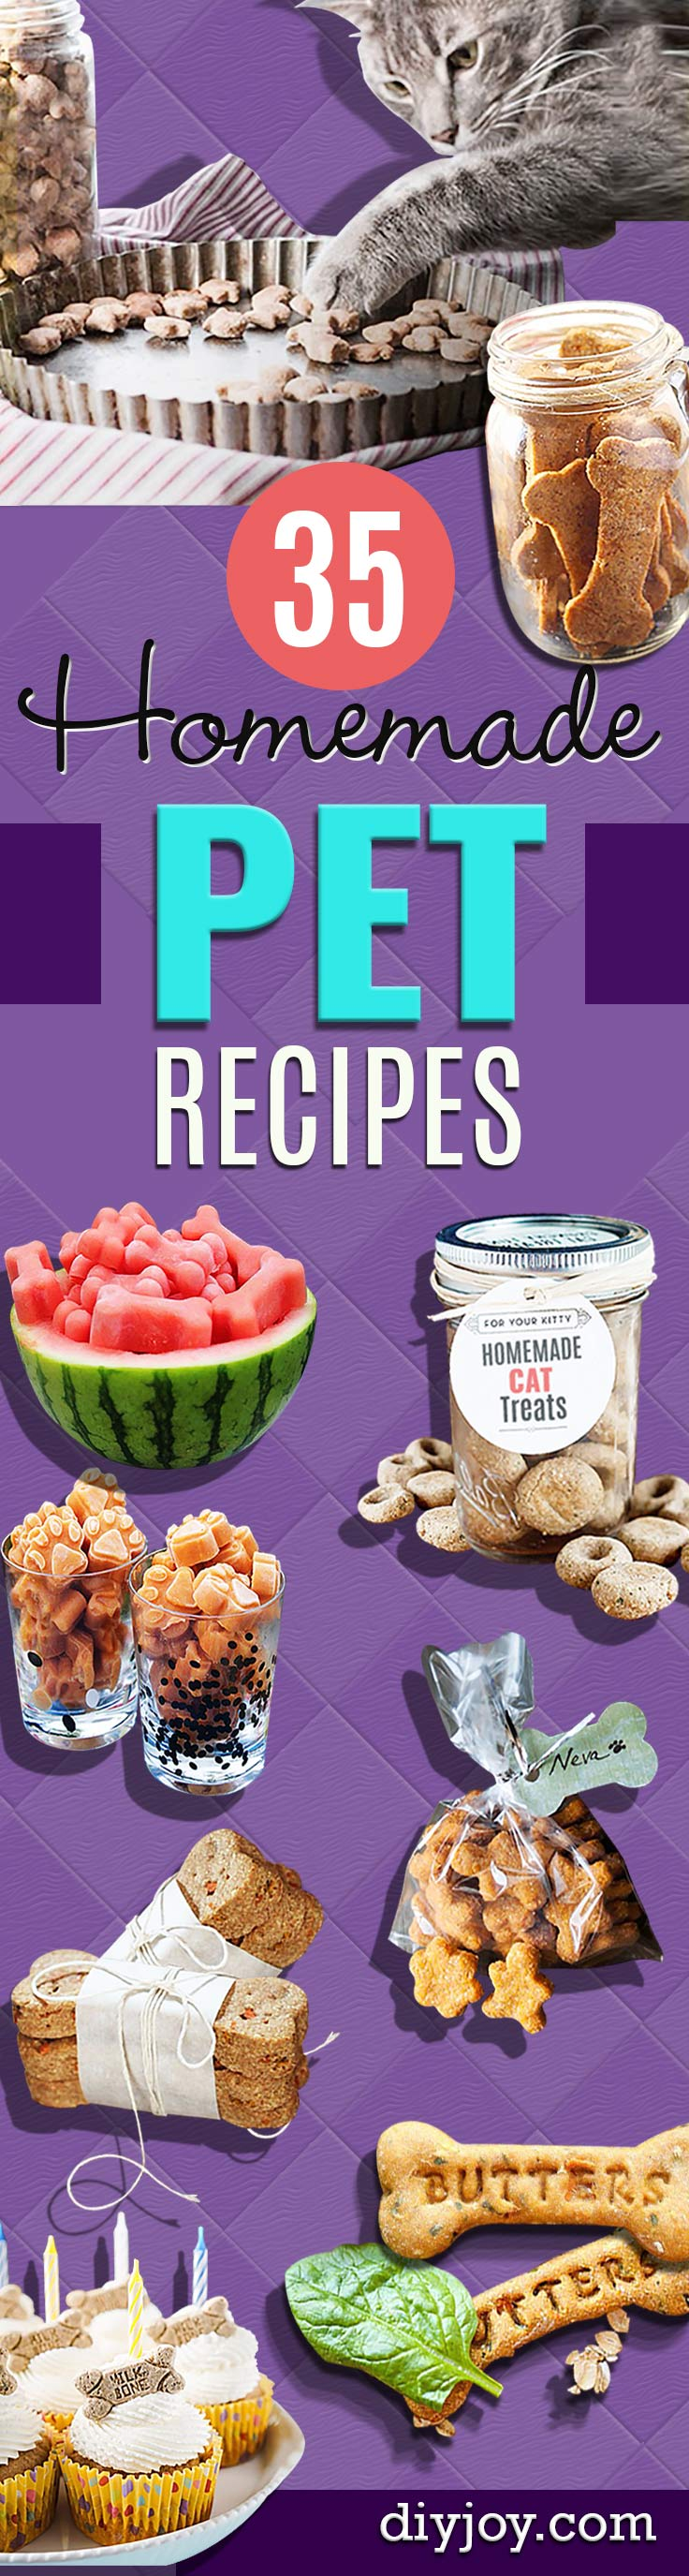 pet recipes for homemade dog food and cat treats diy- Dogs, Cats and Puppies Will Love These Homemade Products and Healthy Recipe Ideas - Peanut Butter, Gluten Free, Grain Free - How To Make Home made Dog and Cat Food